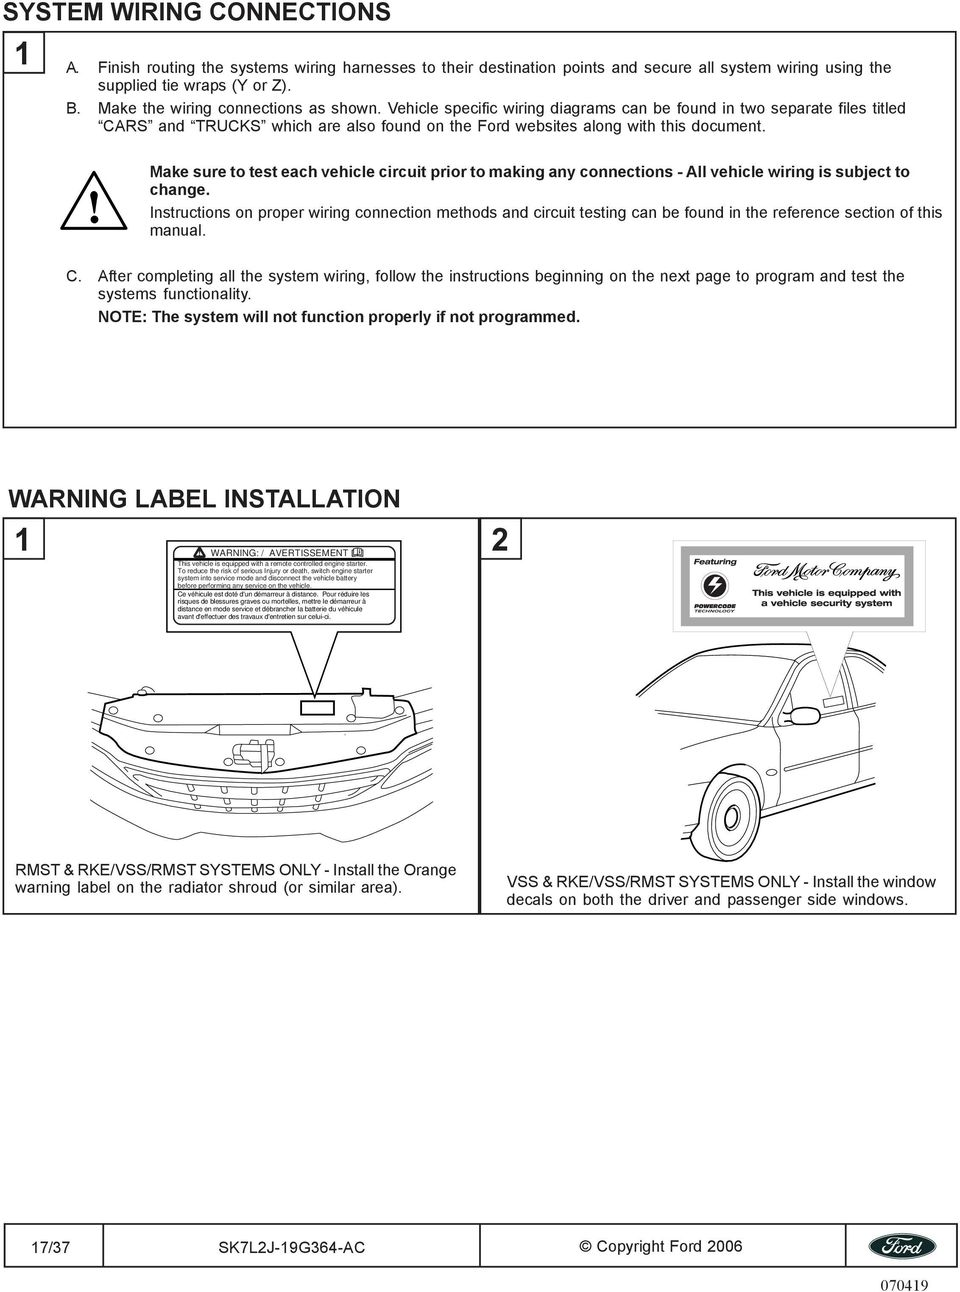 medium resolution of make sure to test each vehicle circuit prior to making any connections all vehicle wiring